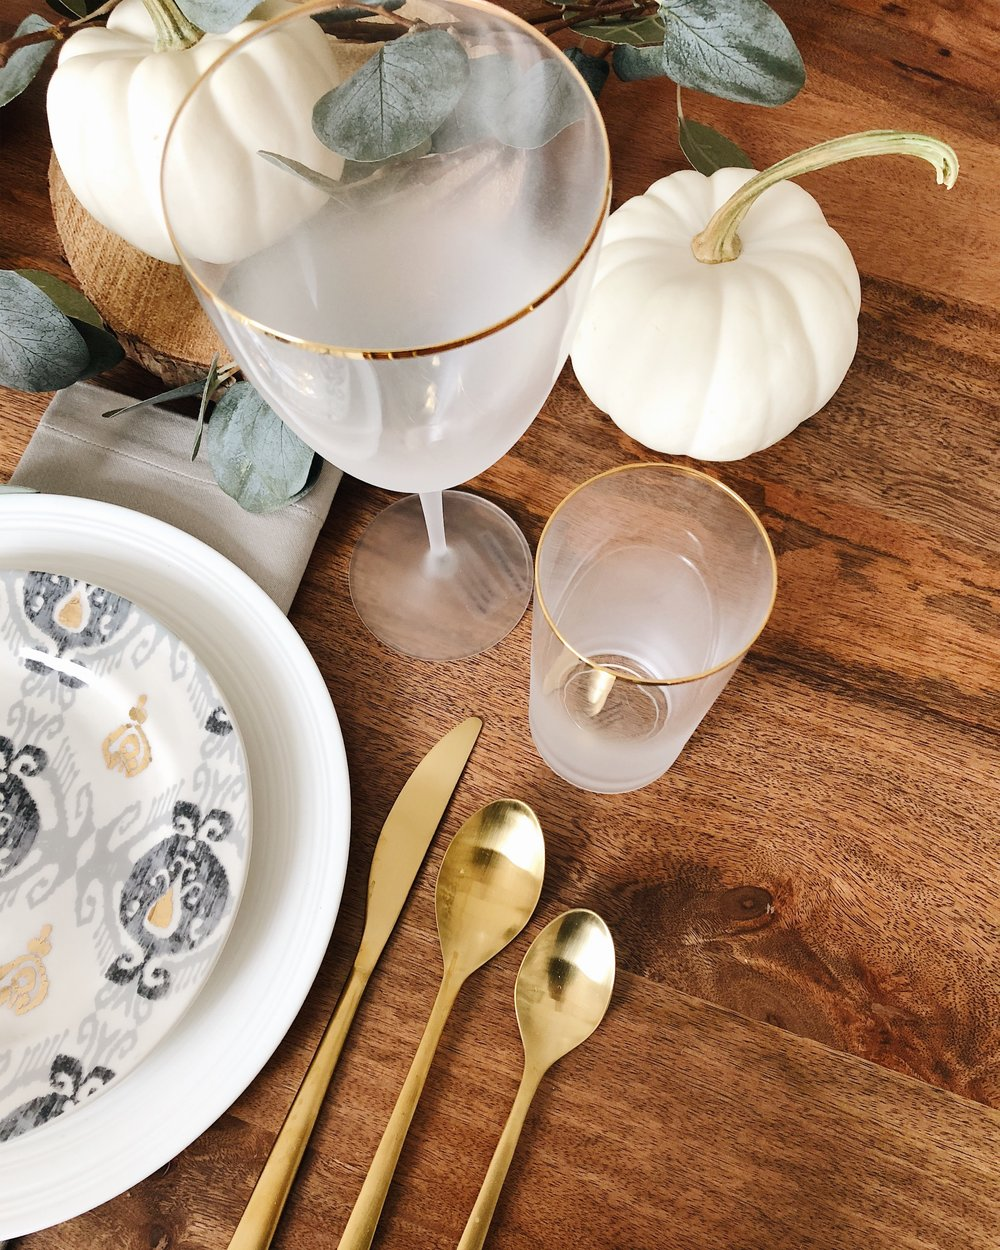 Thanksgiving Formal Table Setting Ideas, Four Basics Three Options, Holiday Decor, Calgary Interior Designer, Nyla Free Designs